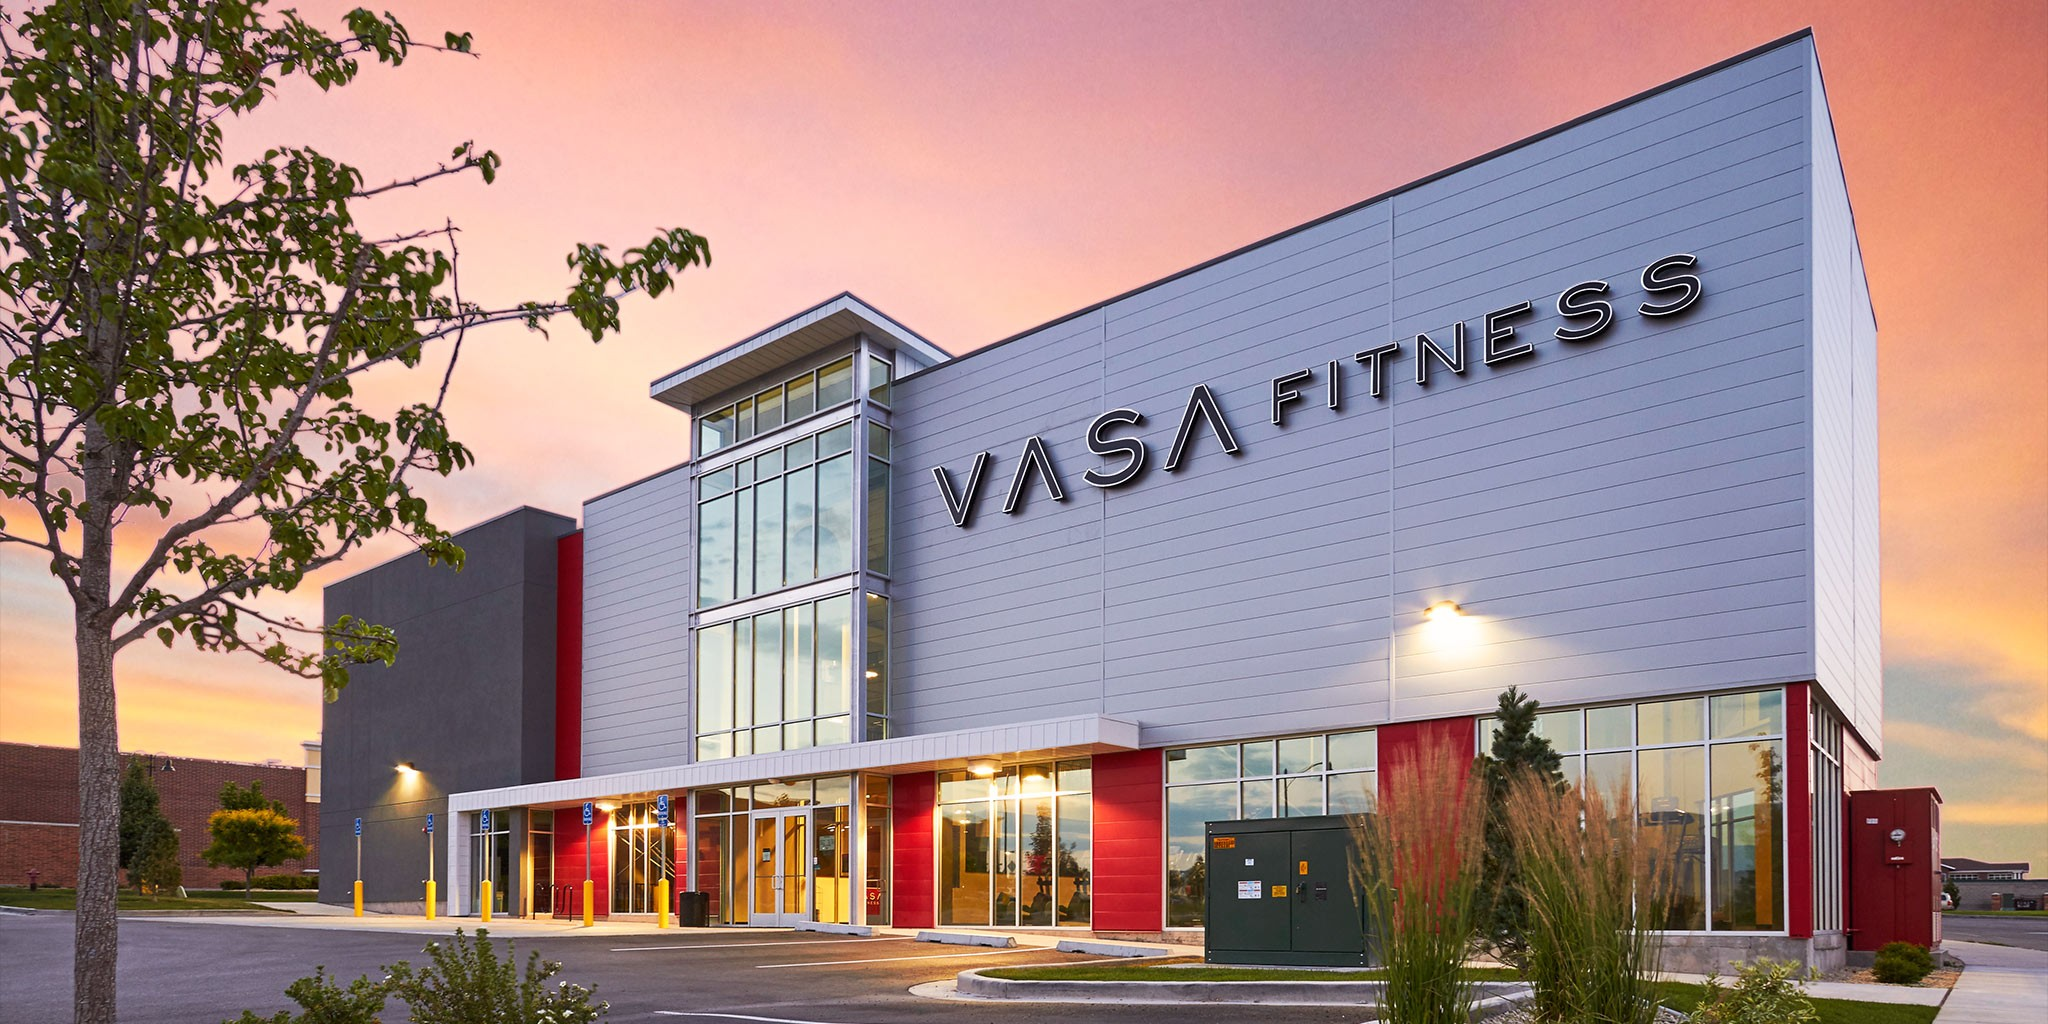 Gym In Saratoga Springs Vasa Fitness Near Me